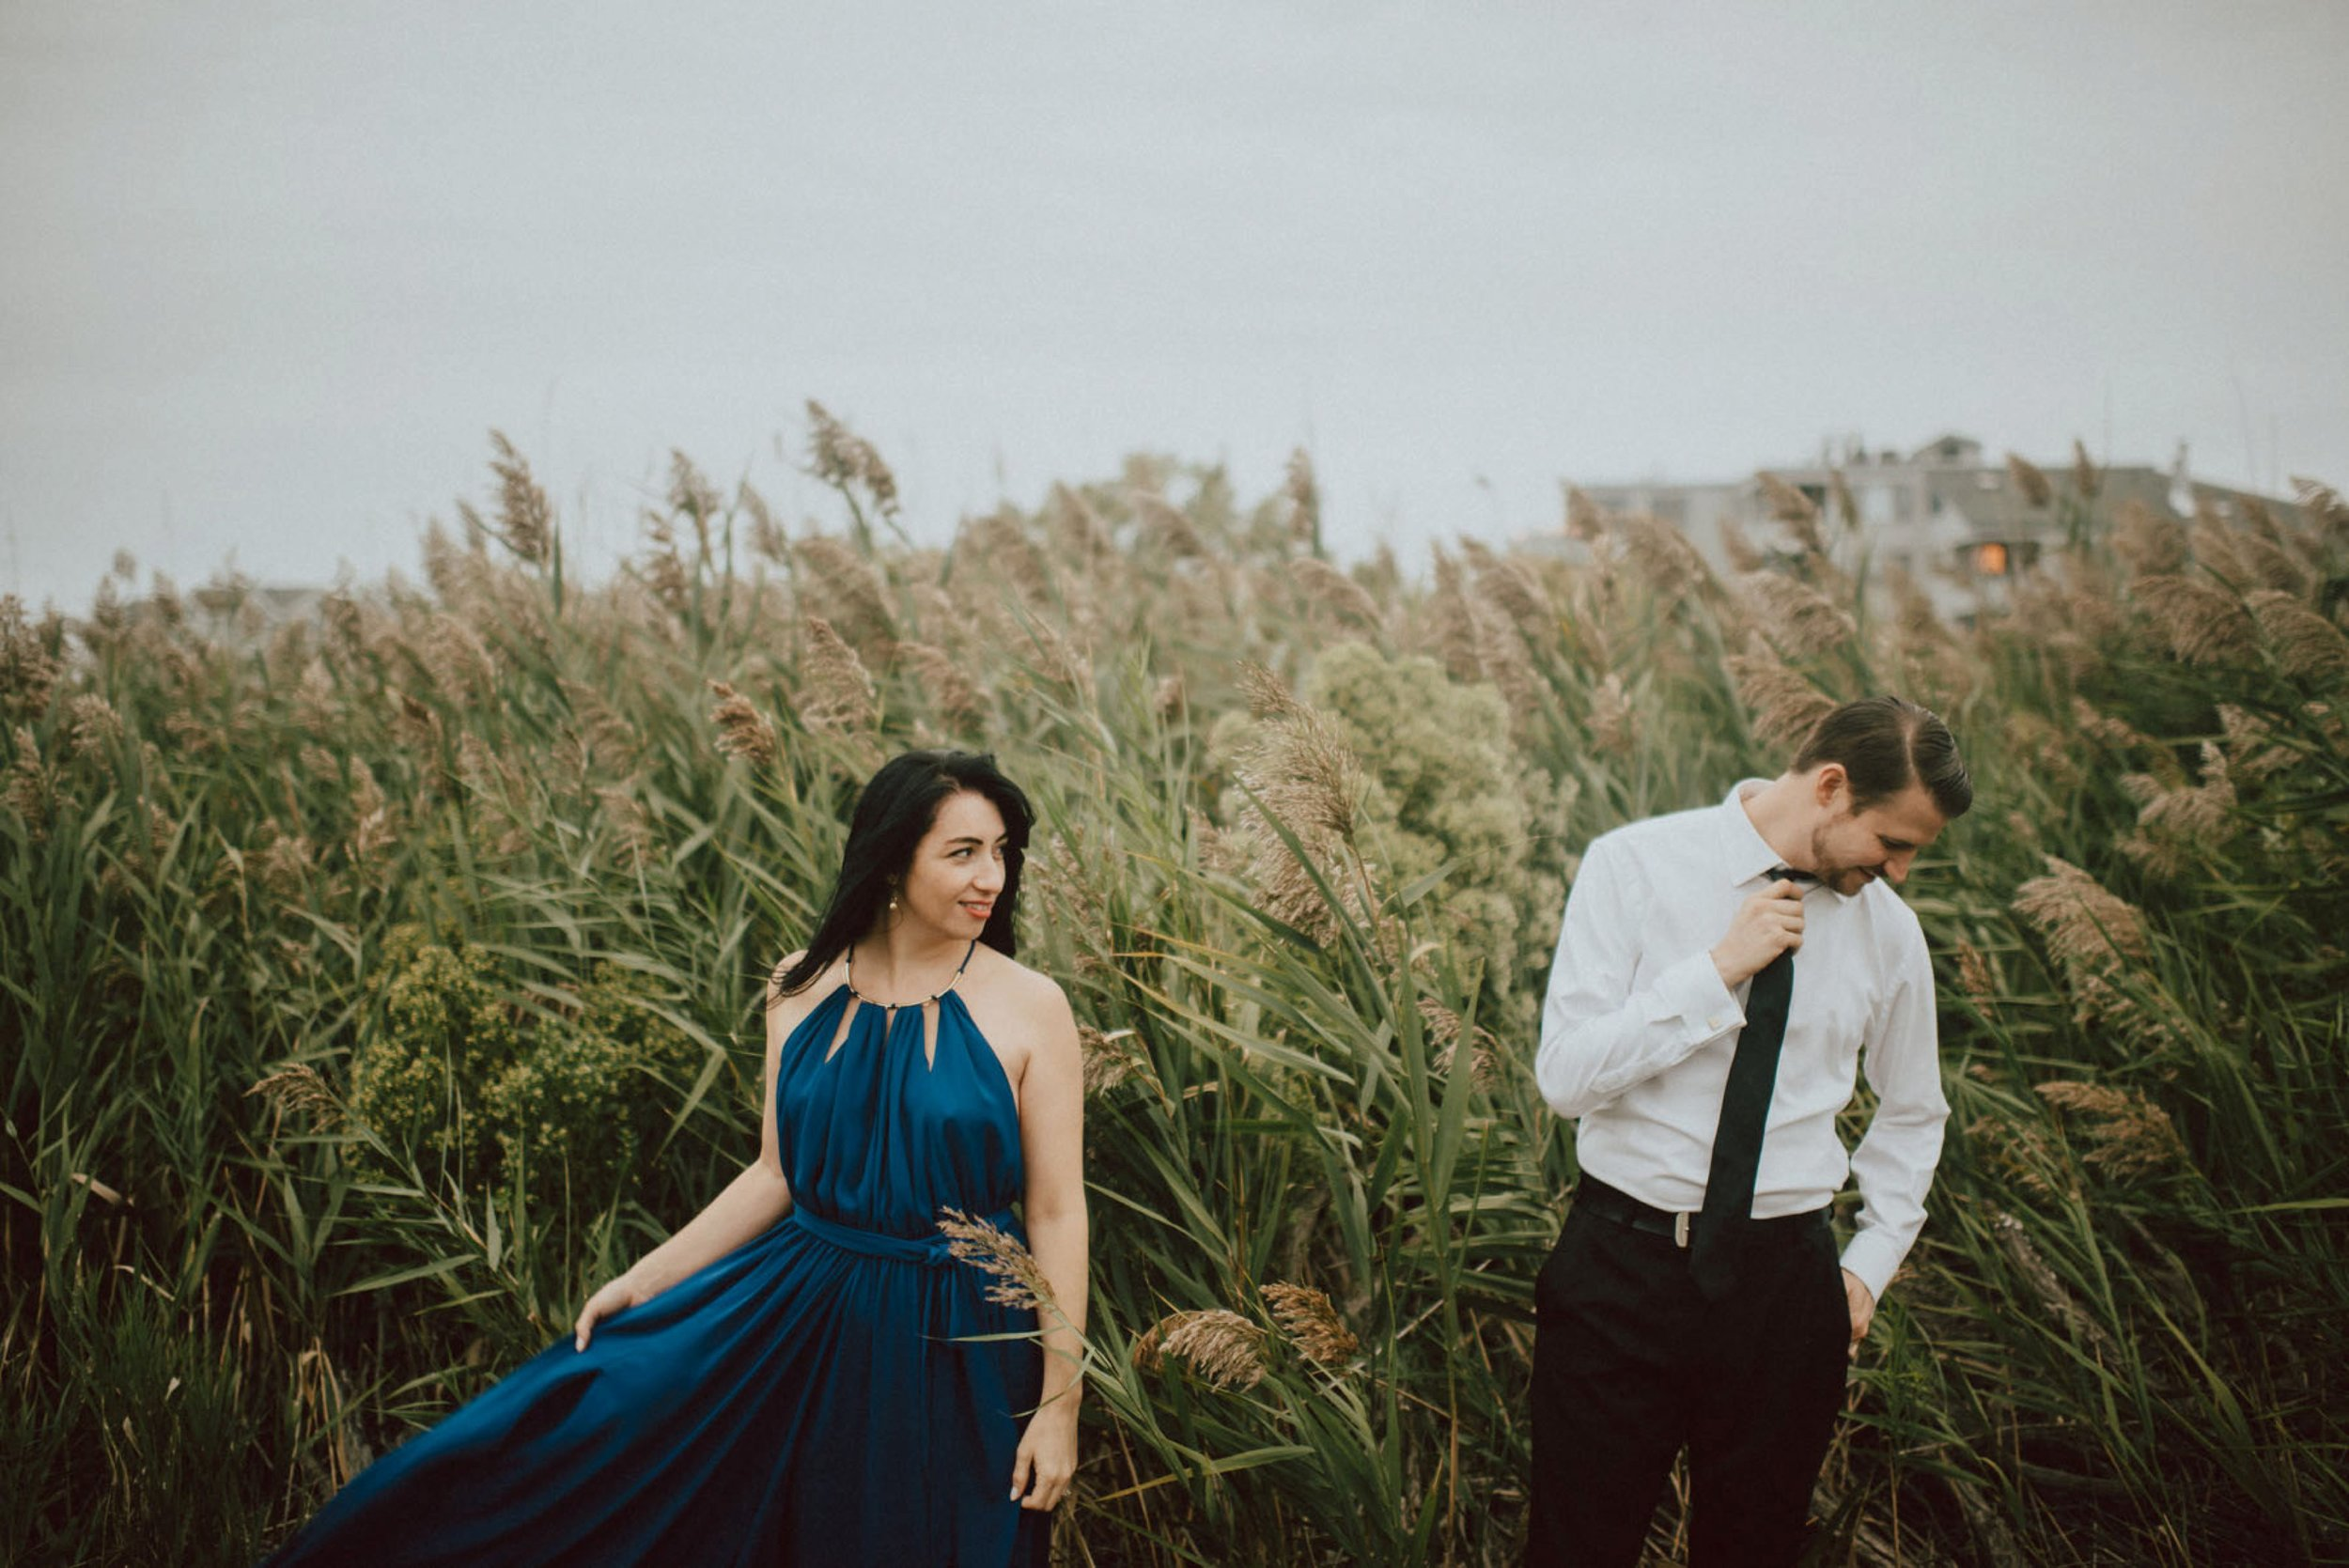 Long-beach-island-engagement-session-43.jpg